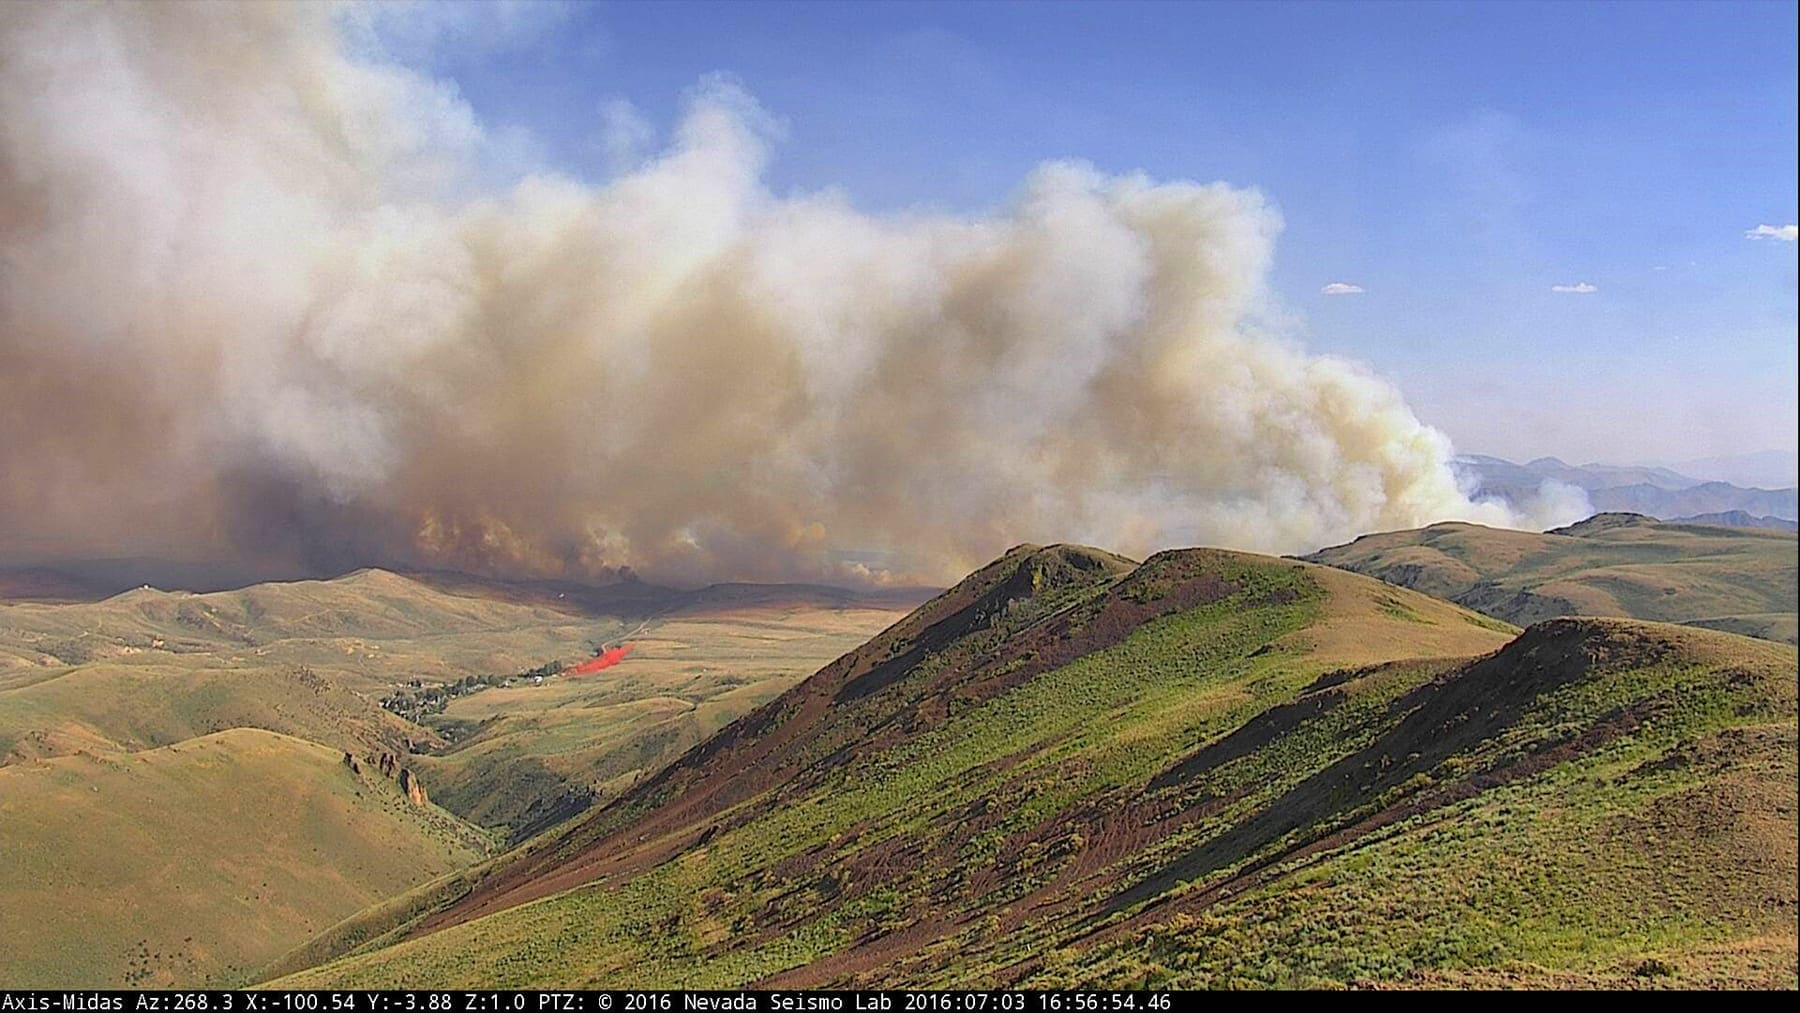 A wildfire's smoke column billowing up from a hill captured by the AlertWildfire camera system